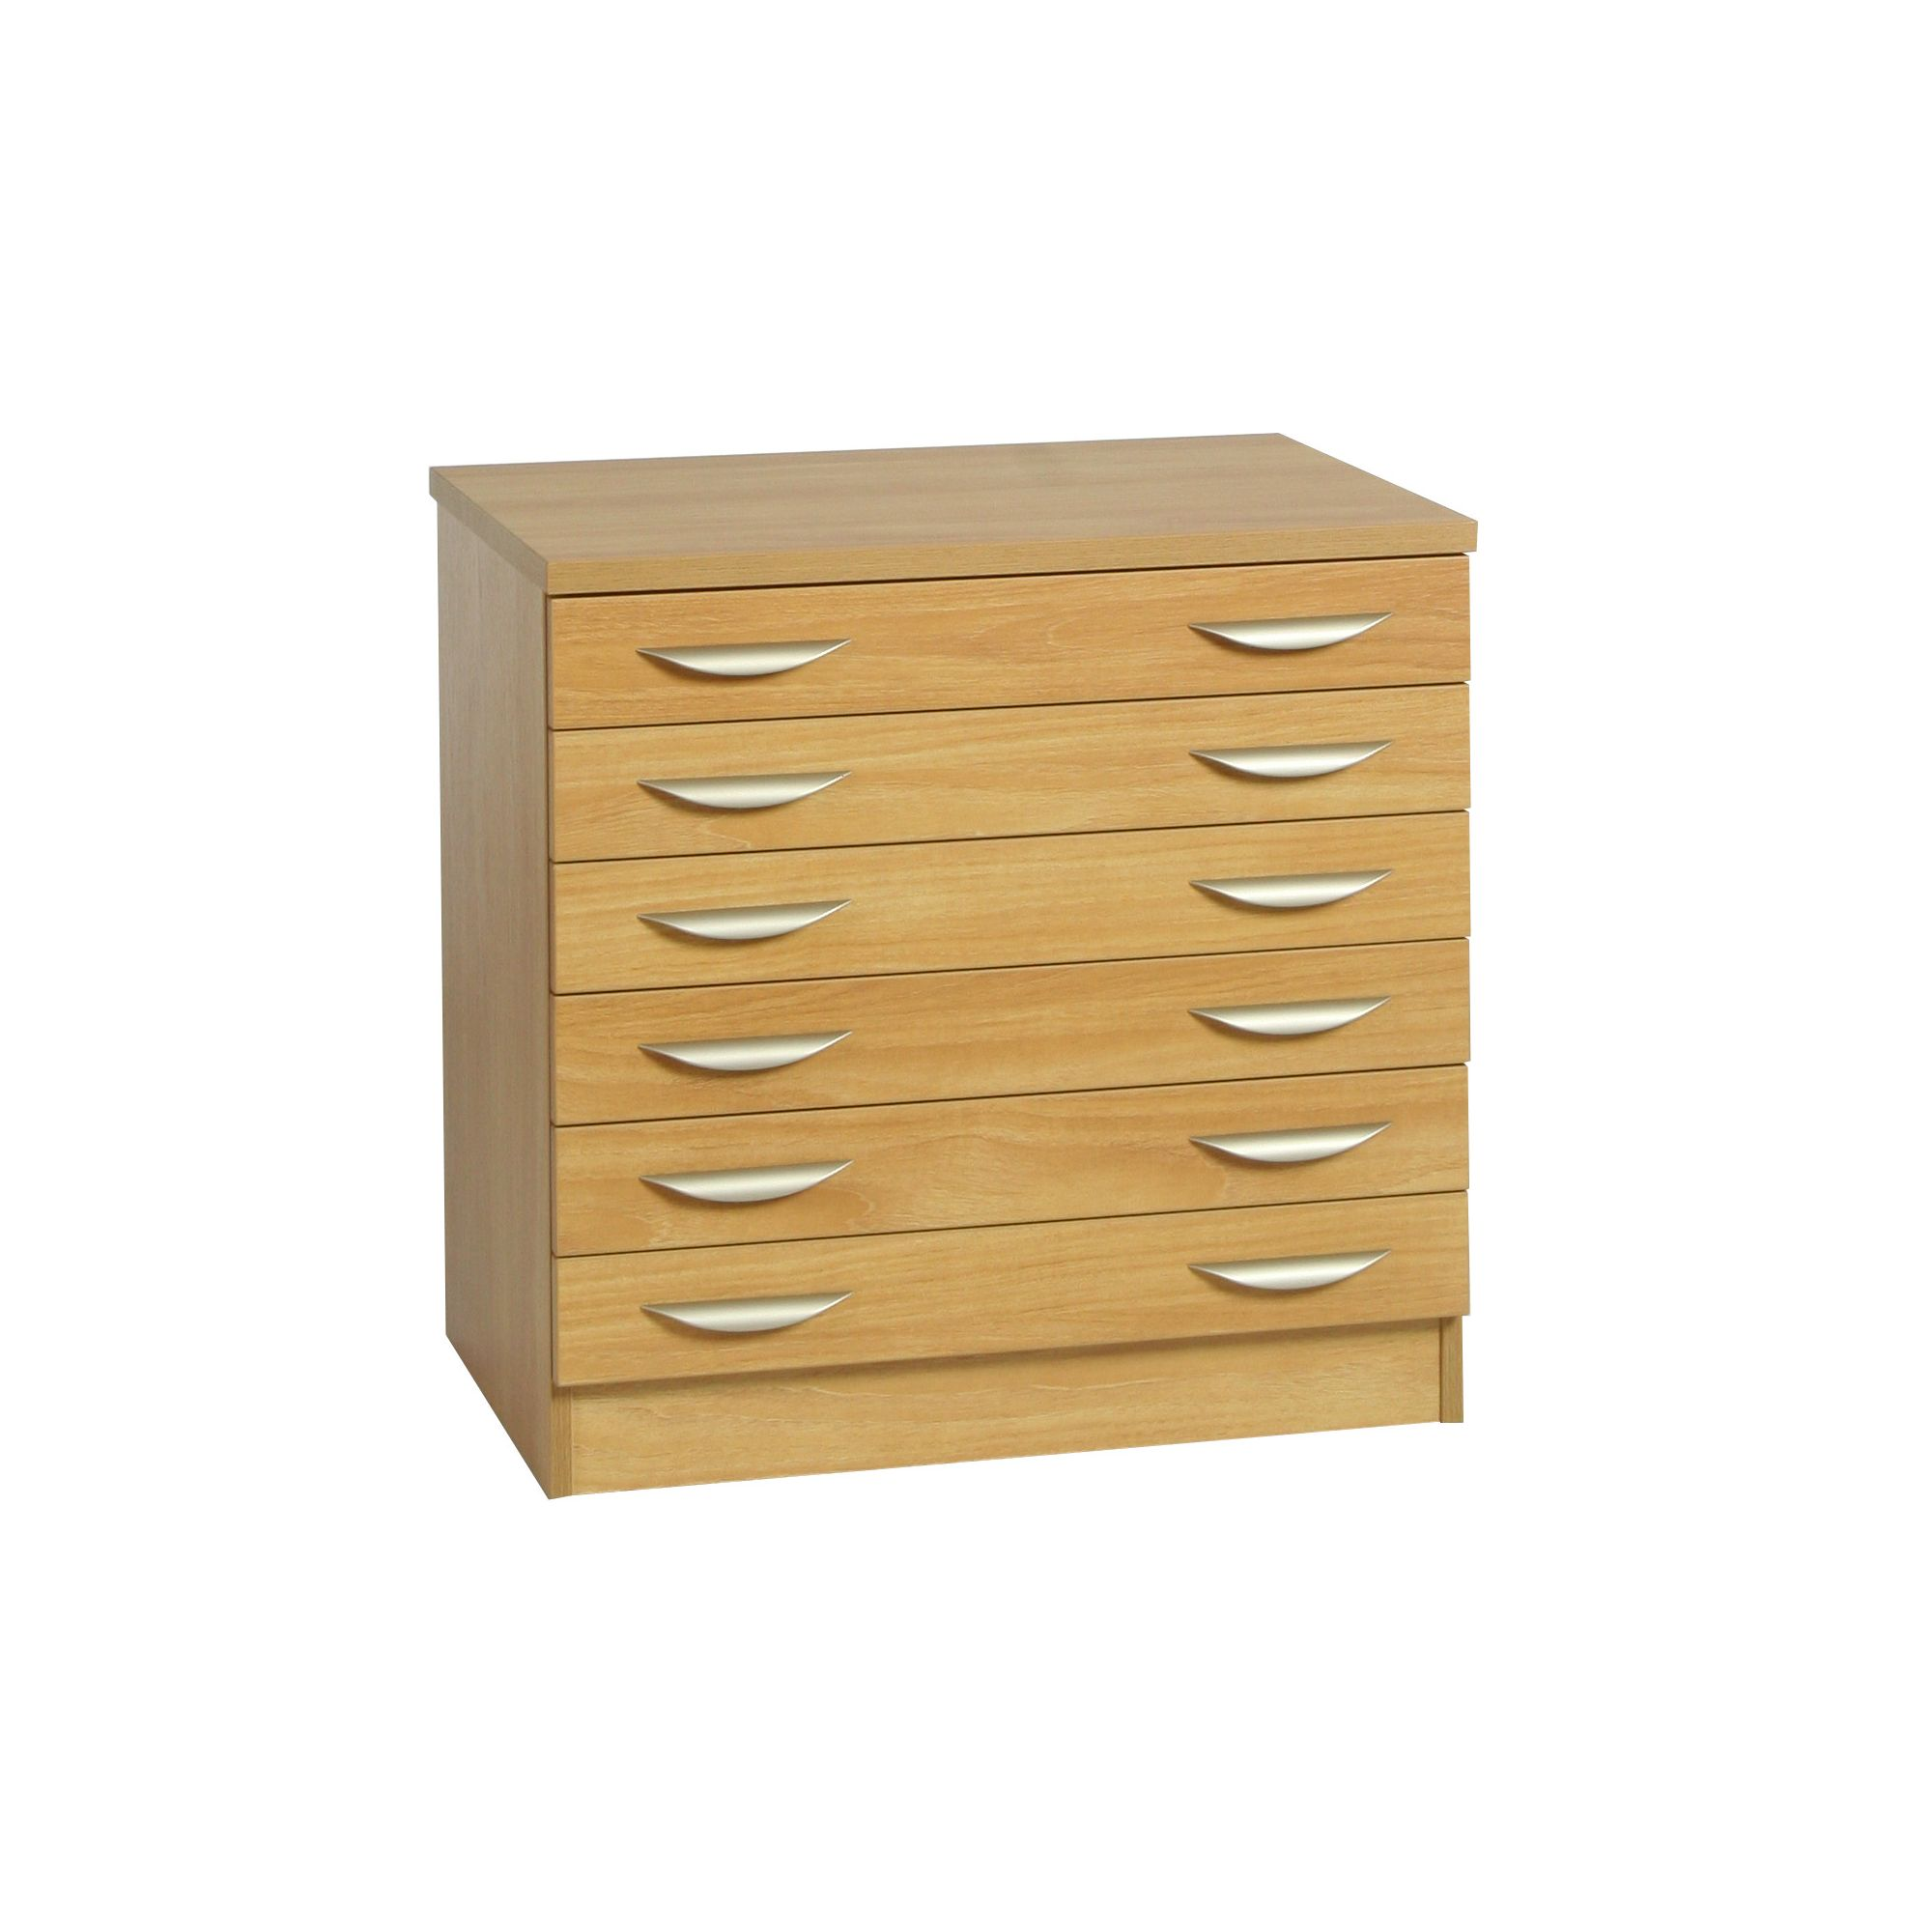 R White Cabinets Six Drawer Wooden Unit - Teak at Tesco Direct